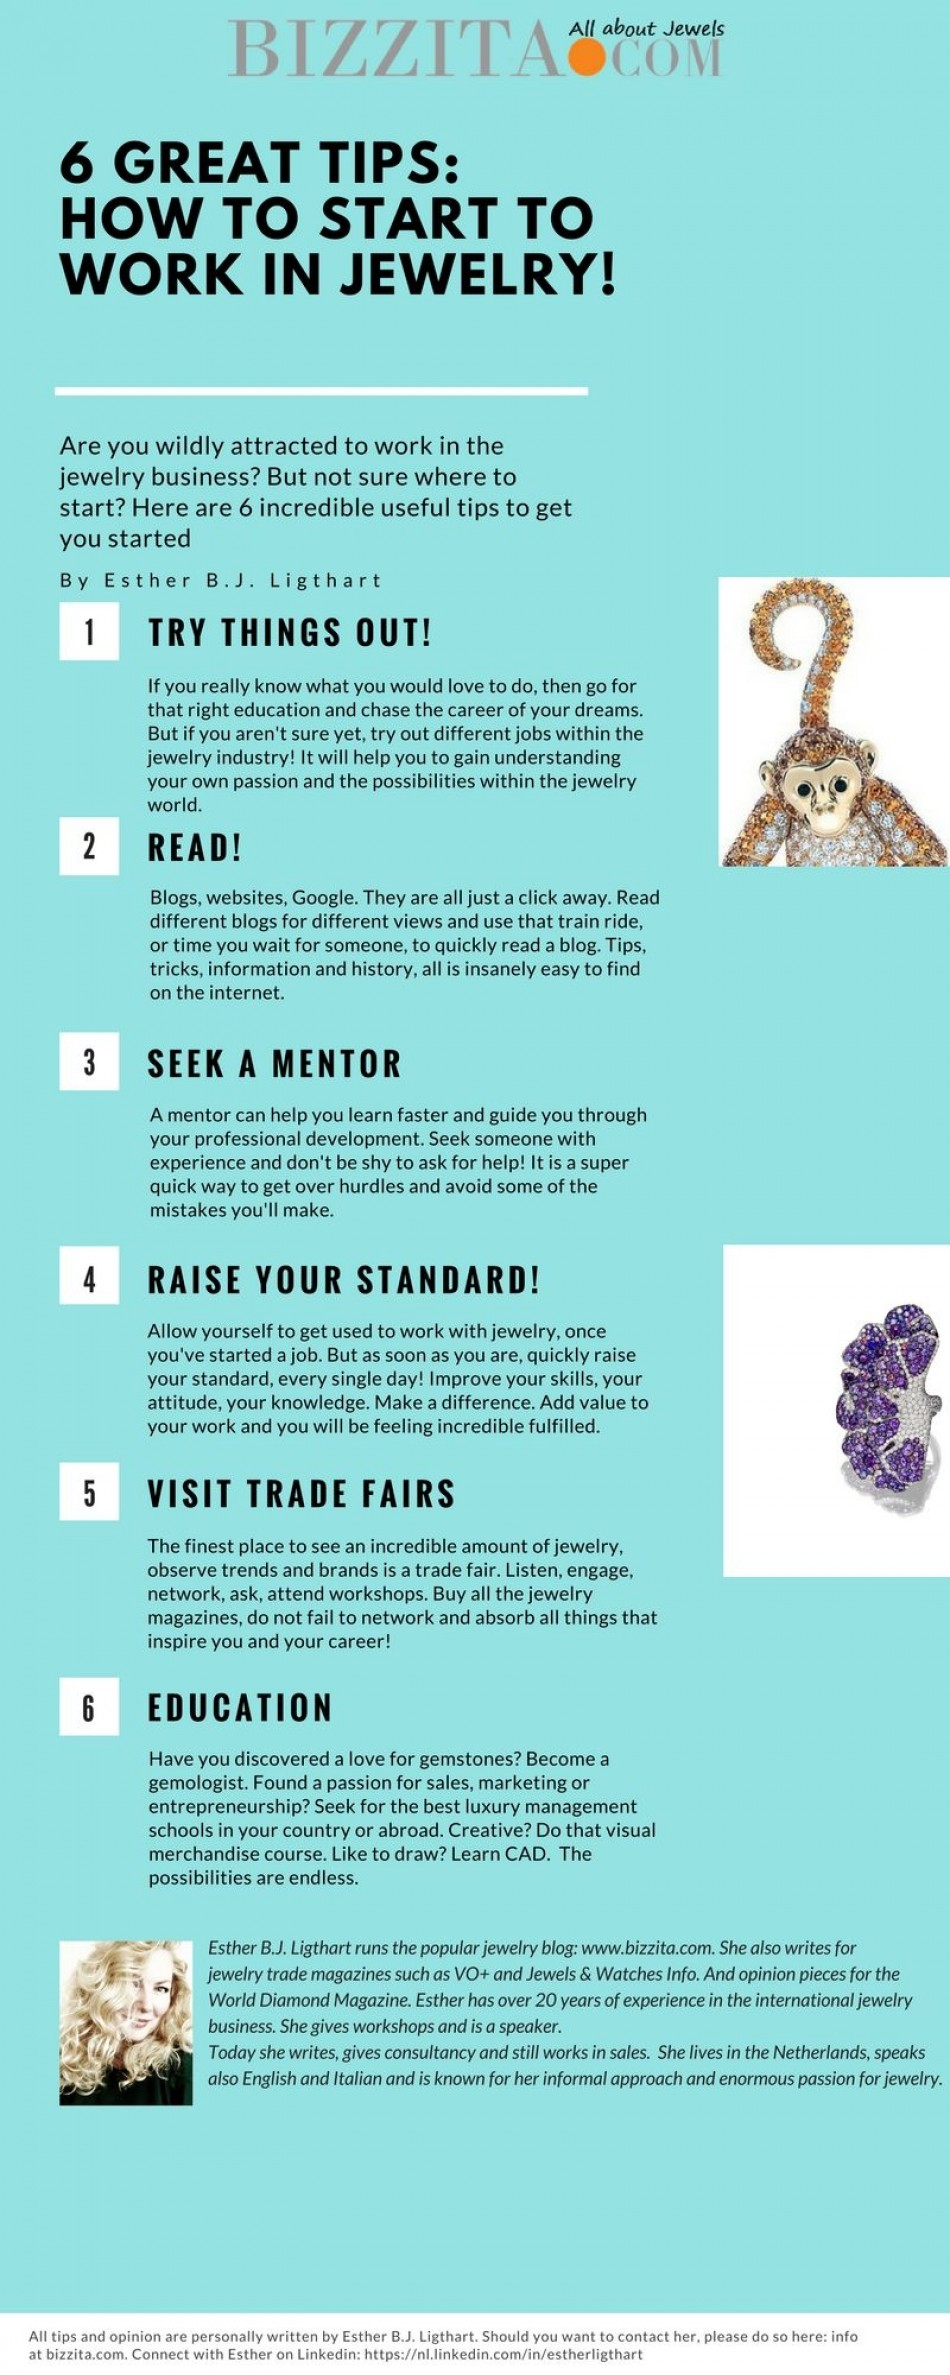 6 really useful tips on how to start to work in jewelry!